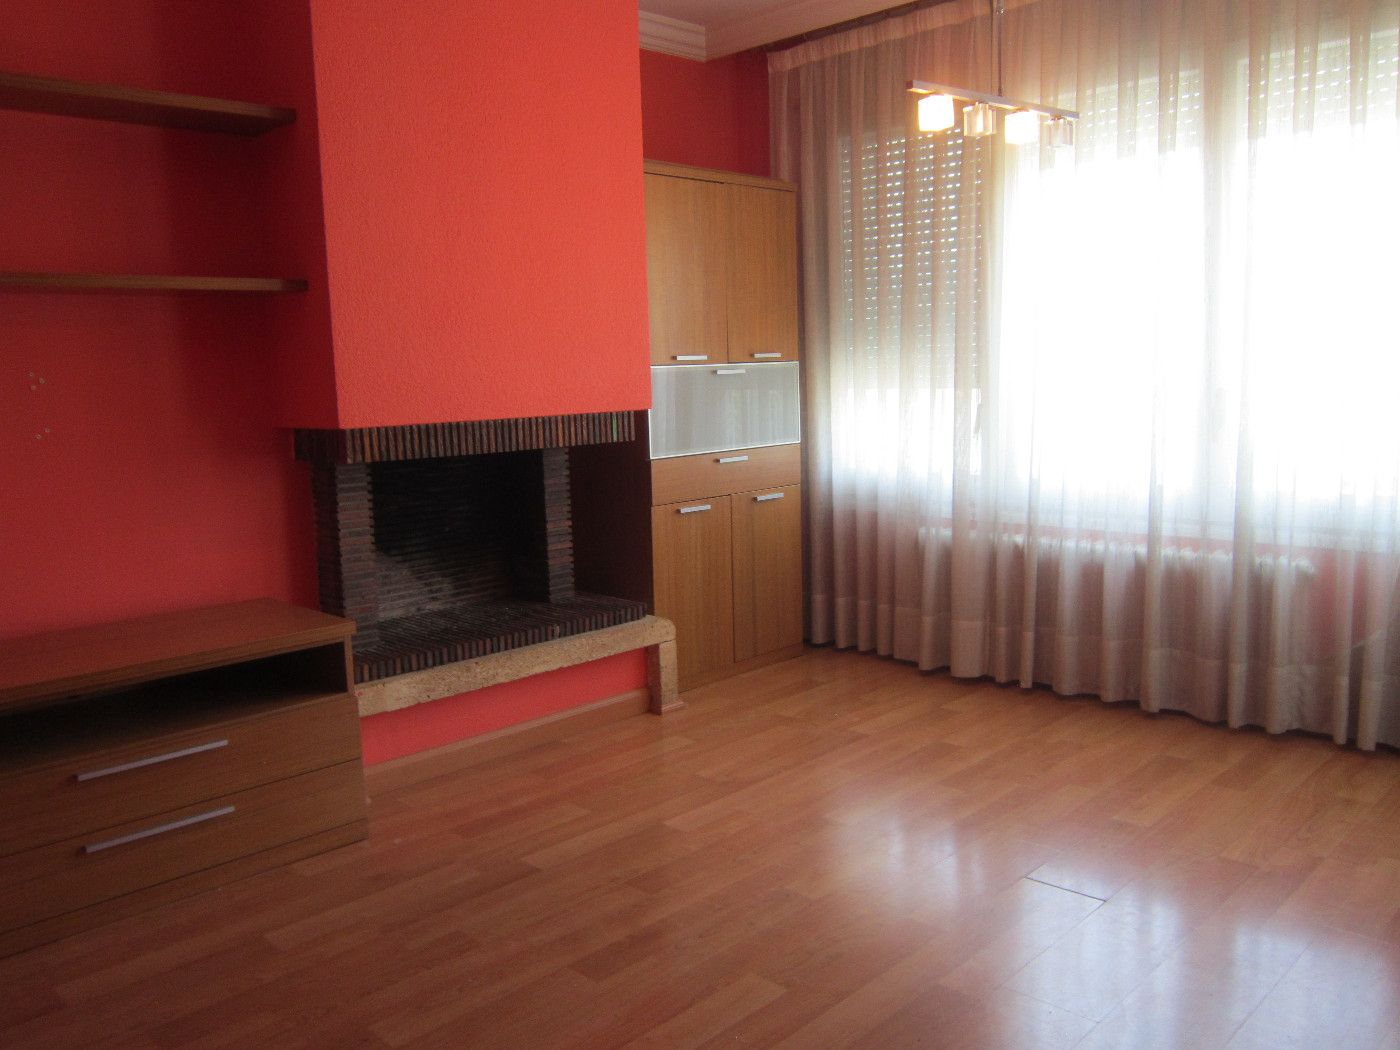 Appartement  Olot. Pis a olot 3hab.